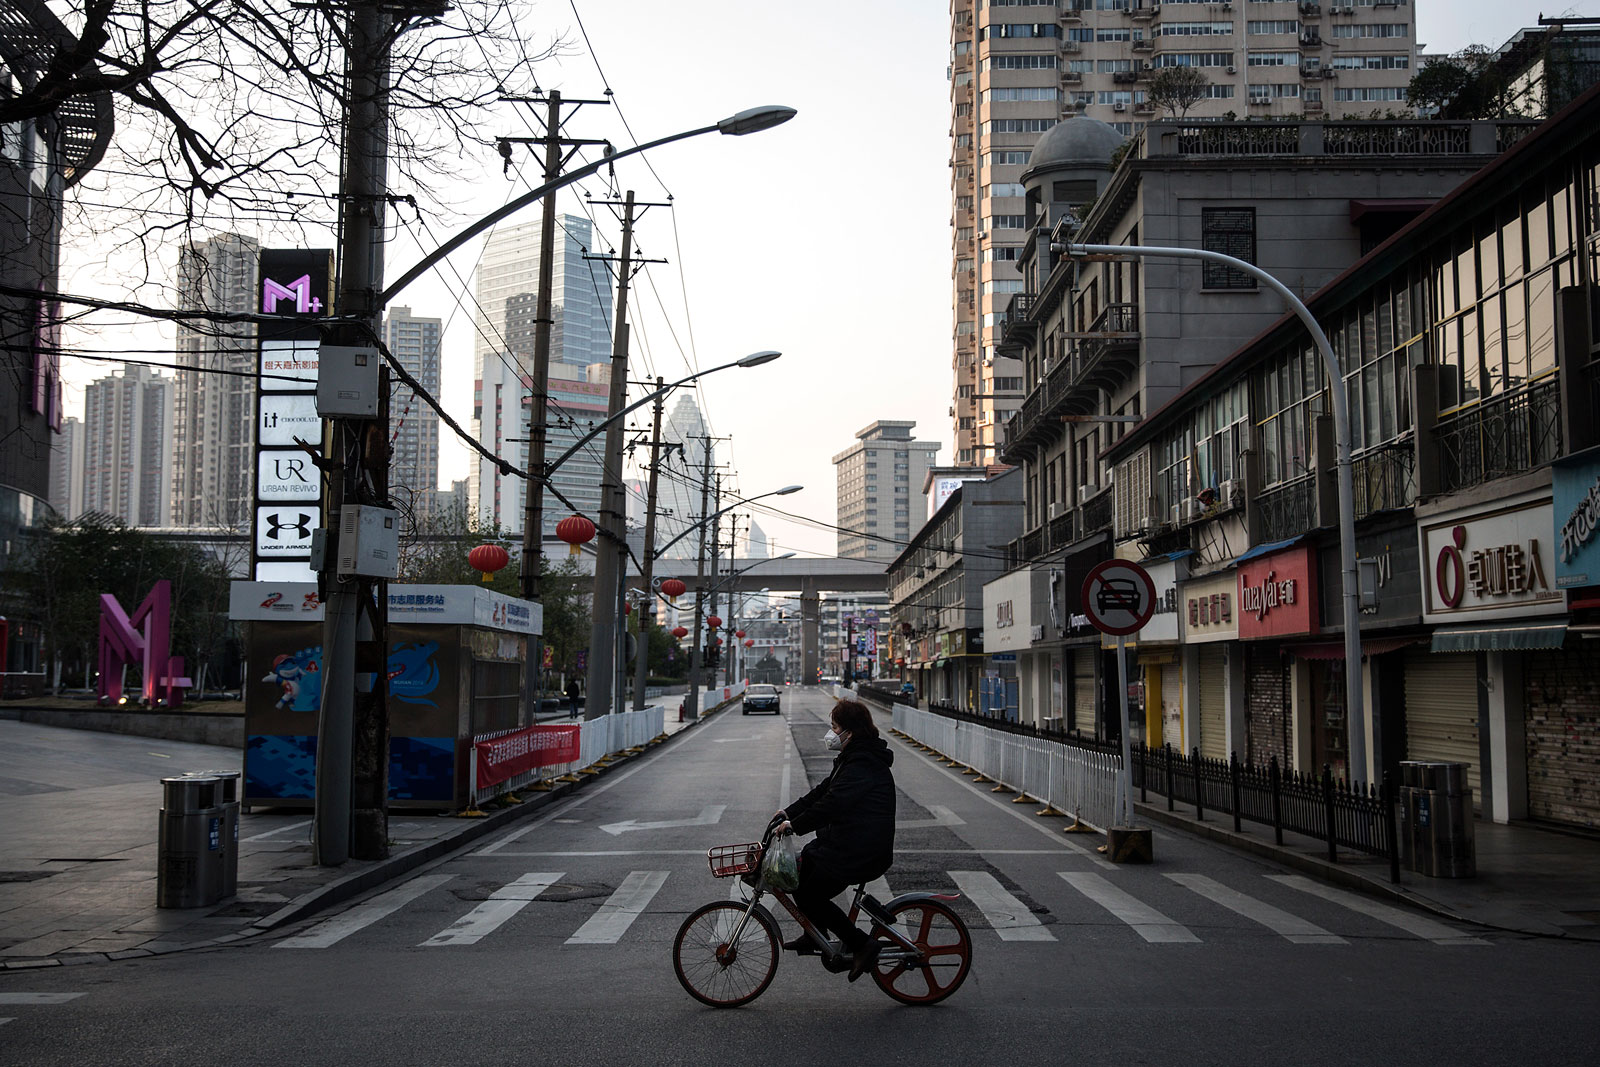 A women wears a protective mask as she ride a bicycle in the empty business street on February 13 in Wuhan, China.